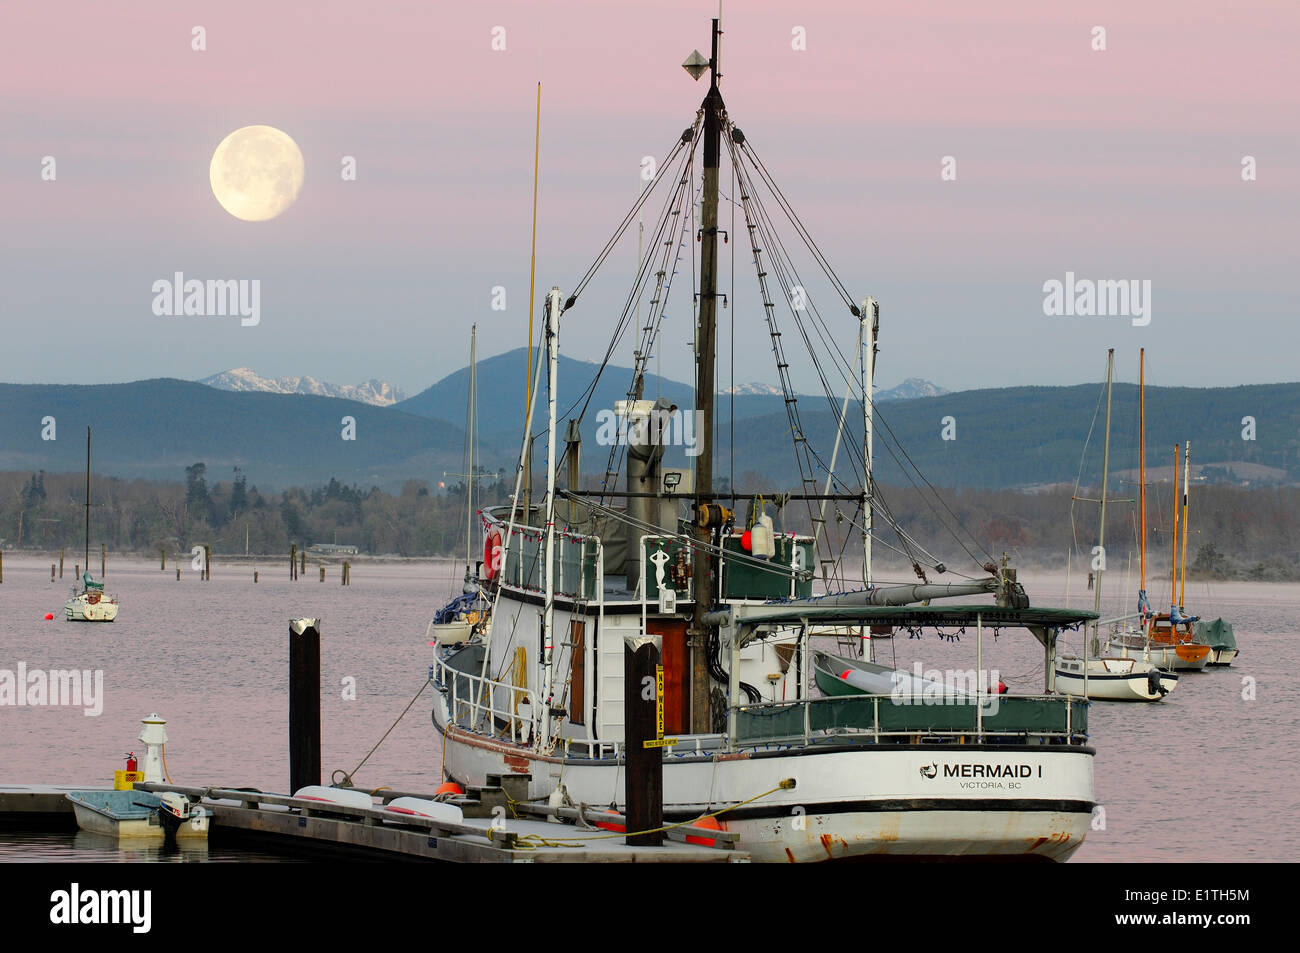 The fishing boat, Mermaid1, under a full moon while at berth in Cowichan Bay, BC. - Stock Image